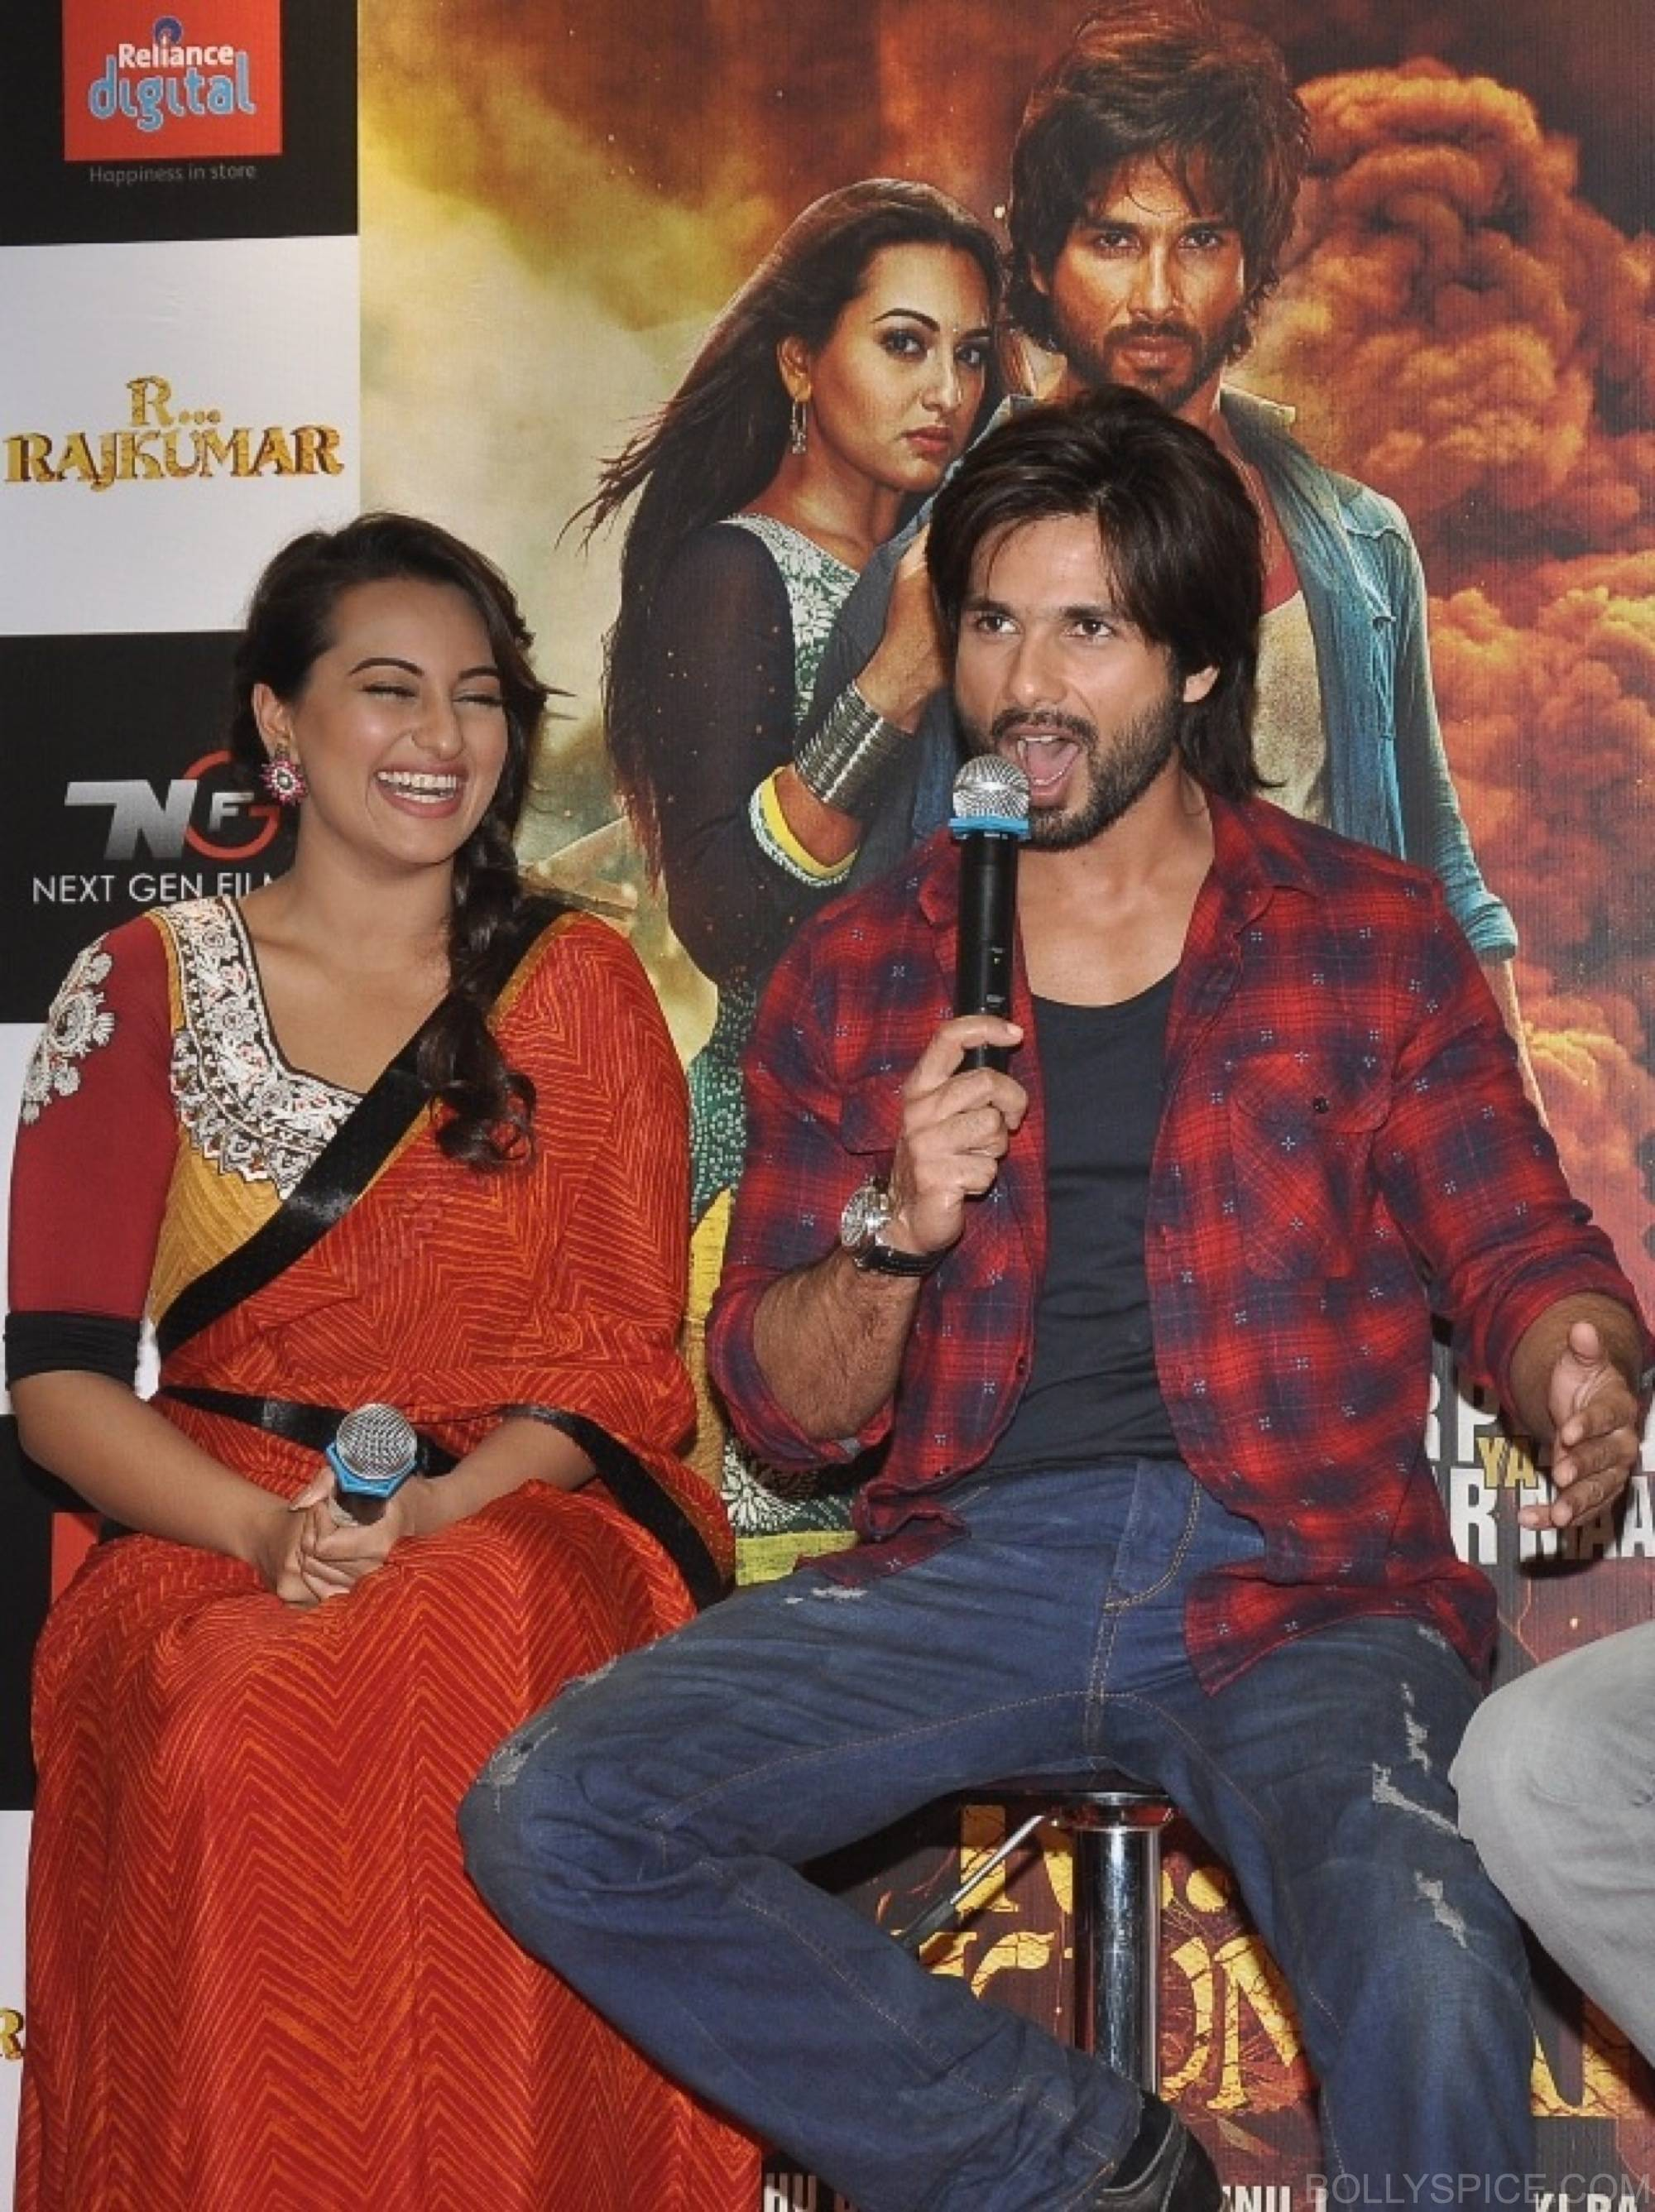 R...Rajkumar custom comic launch 8 R...Rajkumar presents India's first Custom Comic